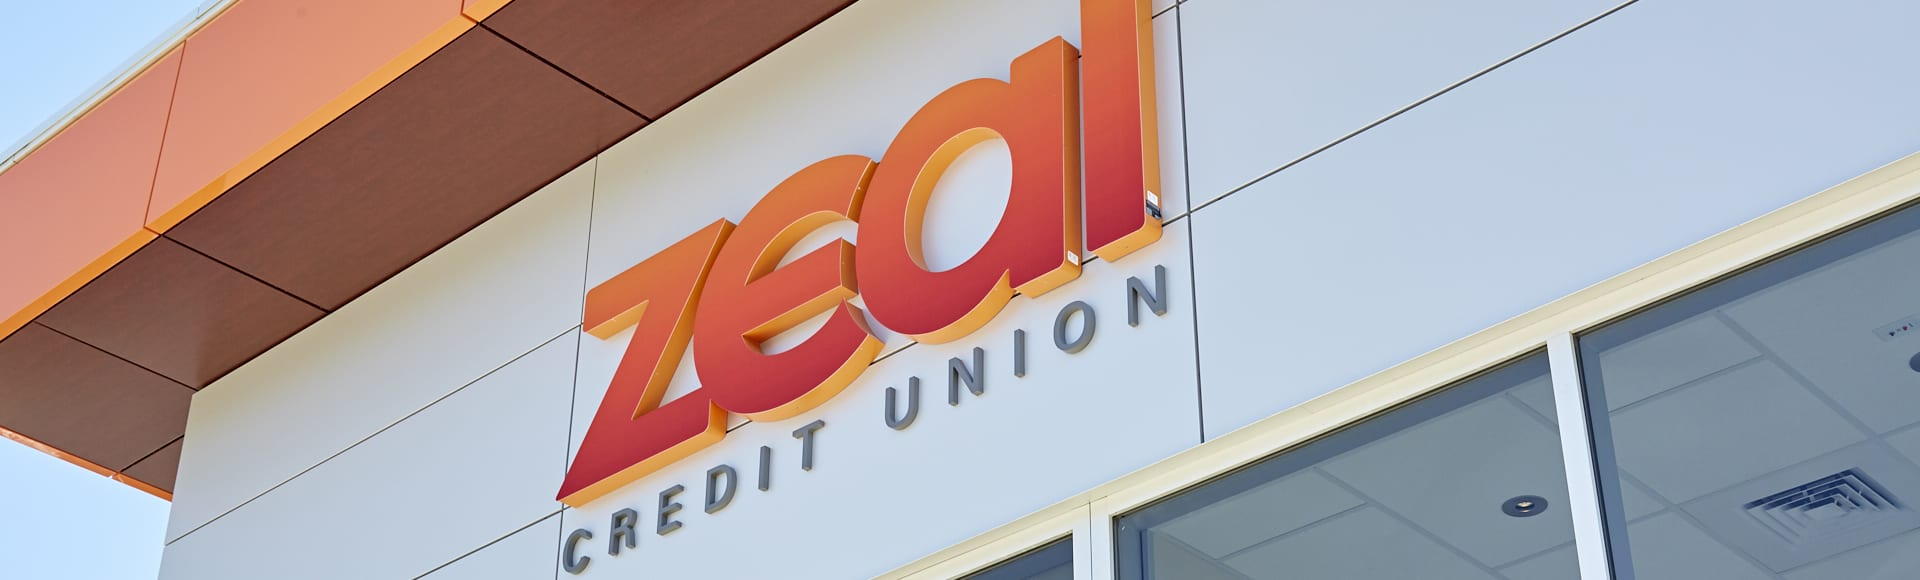 zeal credit union building sign logo